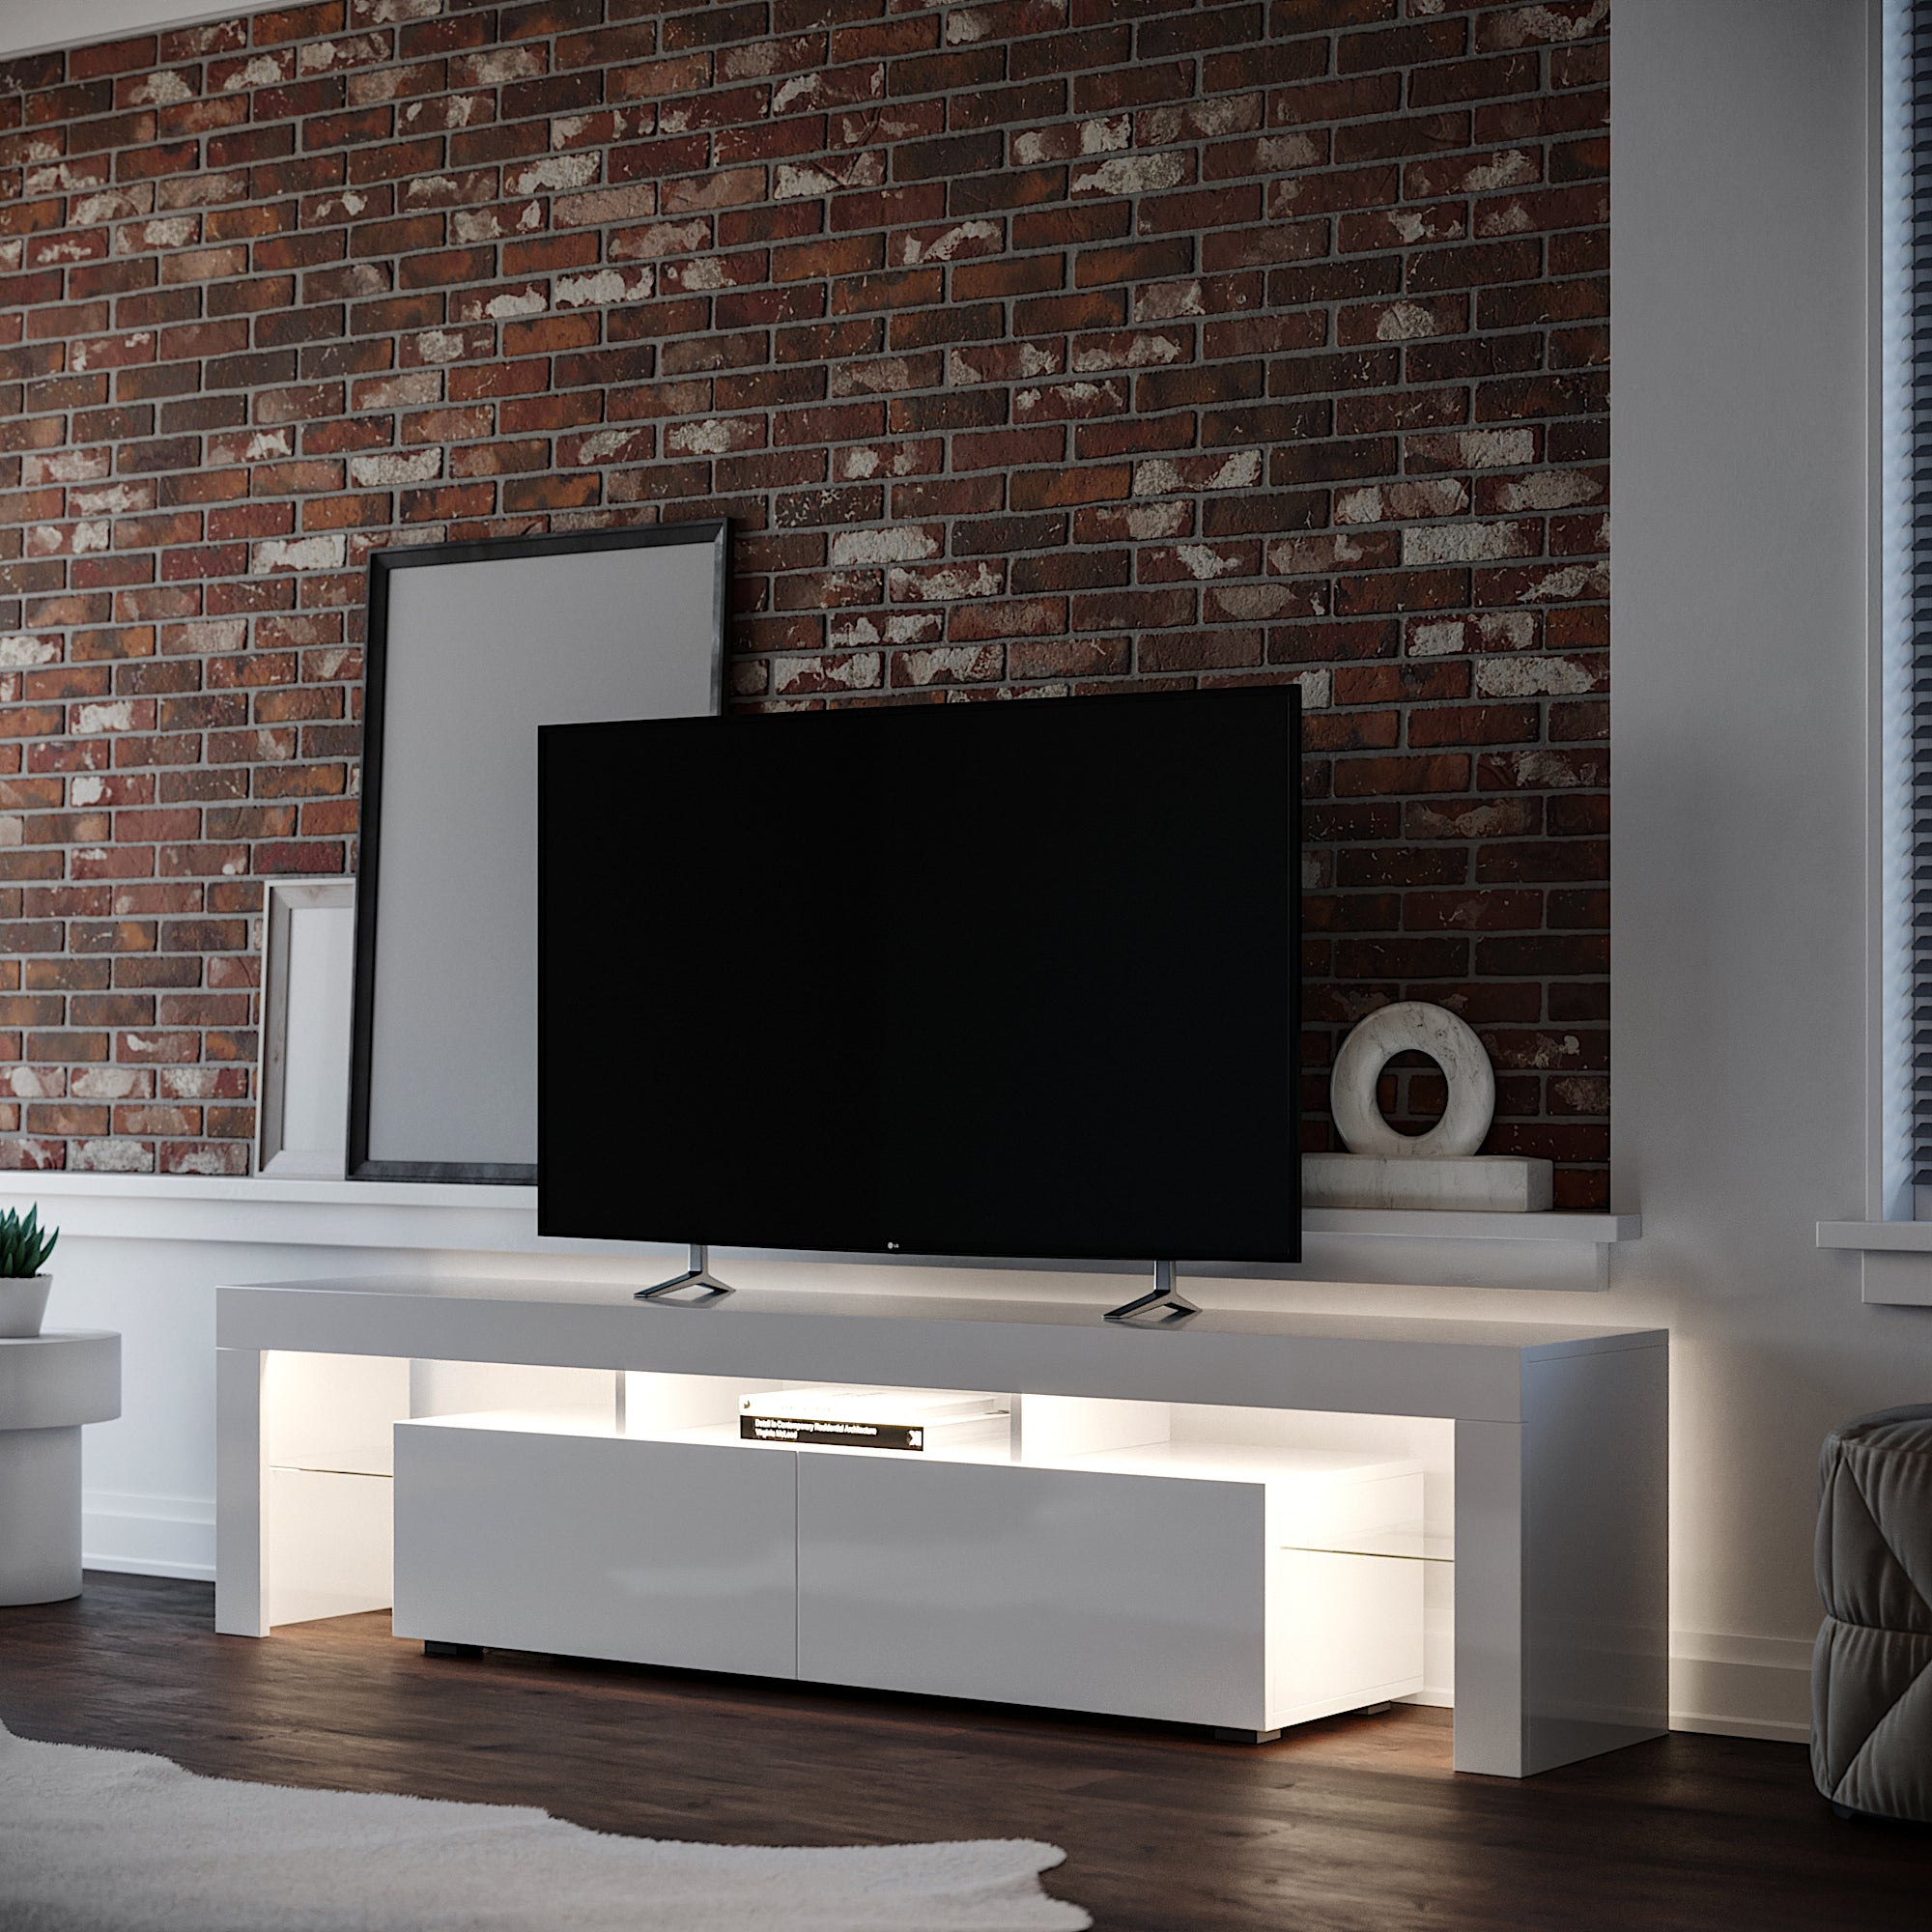 Copenhagen White TV Stand with Flat screen TV and warm white LED Lighting the media unit